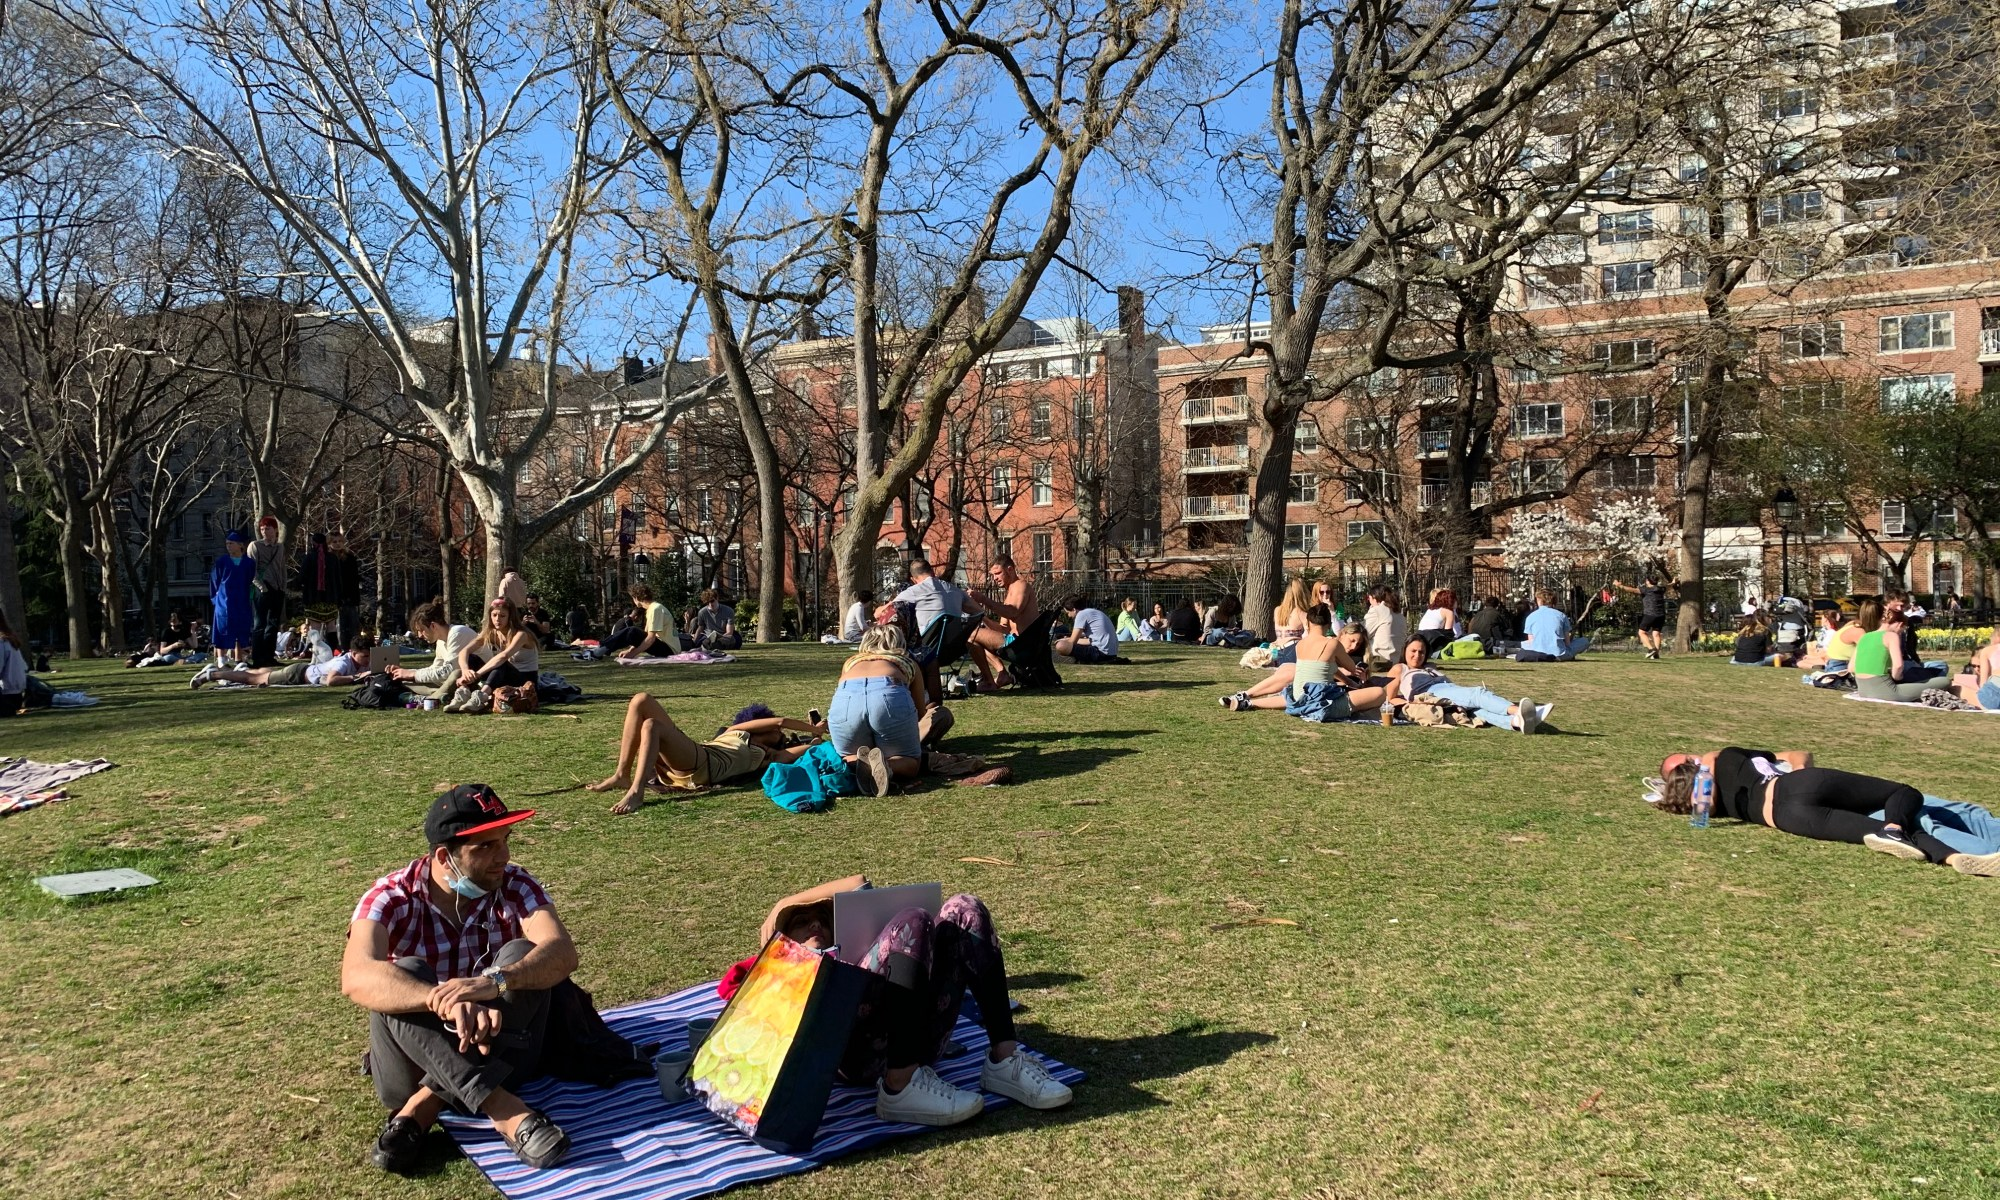 People on the grass in Washington Square Park in early spring